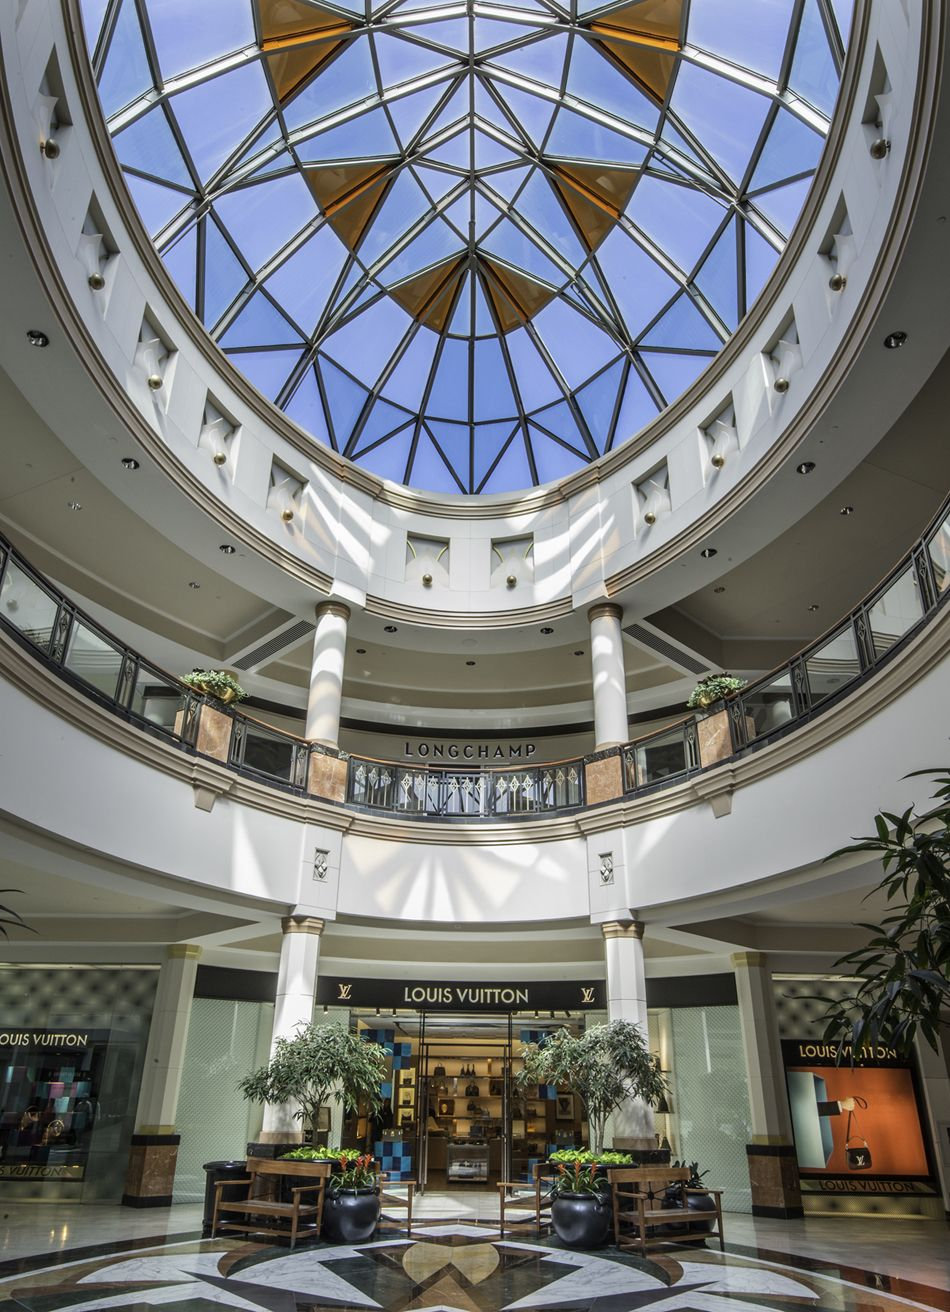 King of prussia mall features many upscale designers like - How many interior designers in the us ...